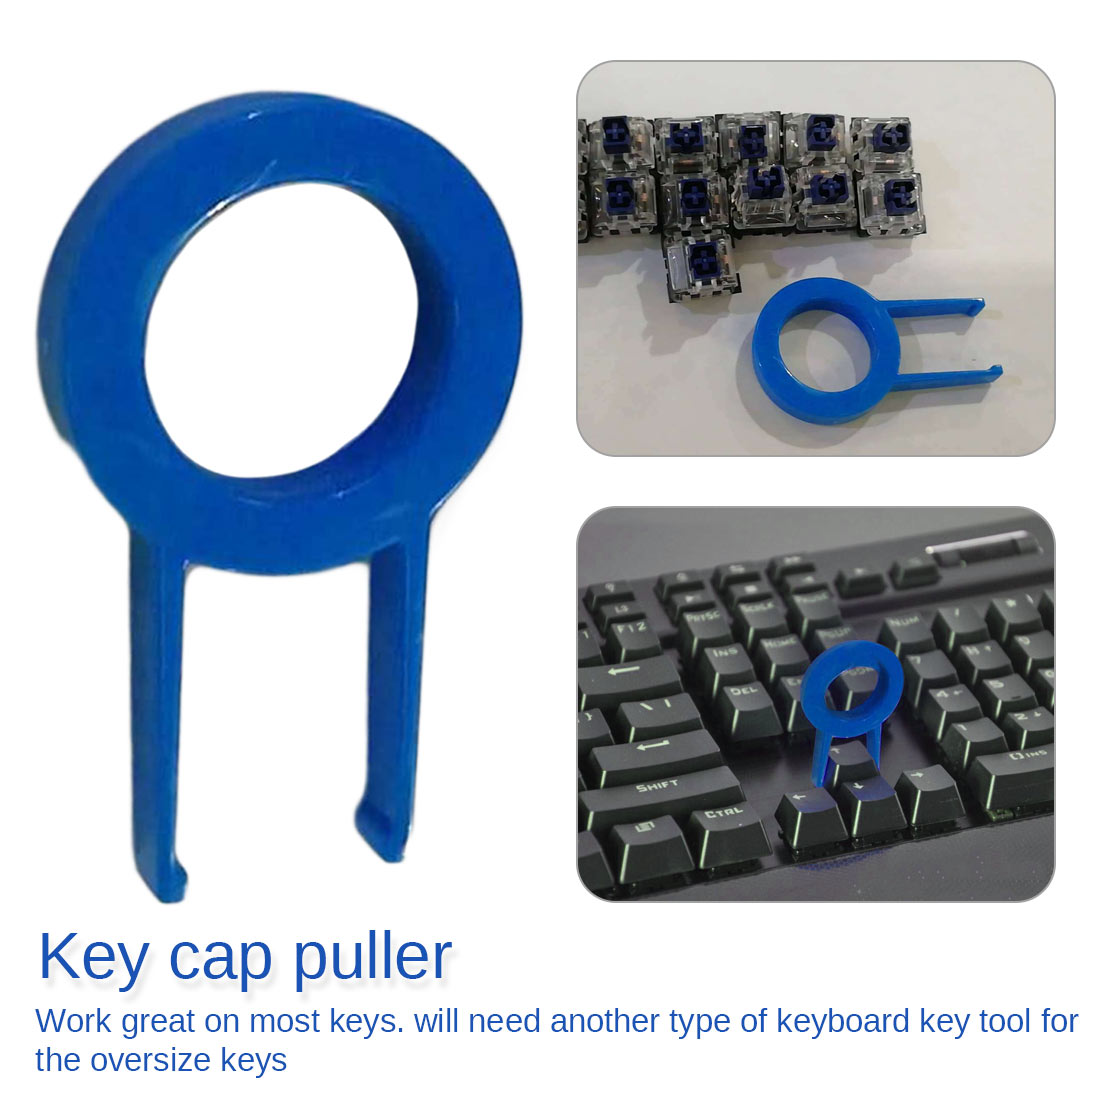 Keycap Puller Mechanical Keyboard Keyboard Key Cap Round Key Cap Fixing Tool Keycap Puller Remover Random Color Black Or Blue